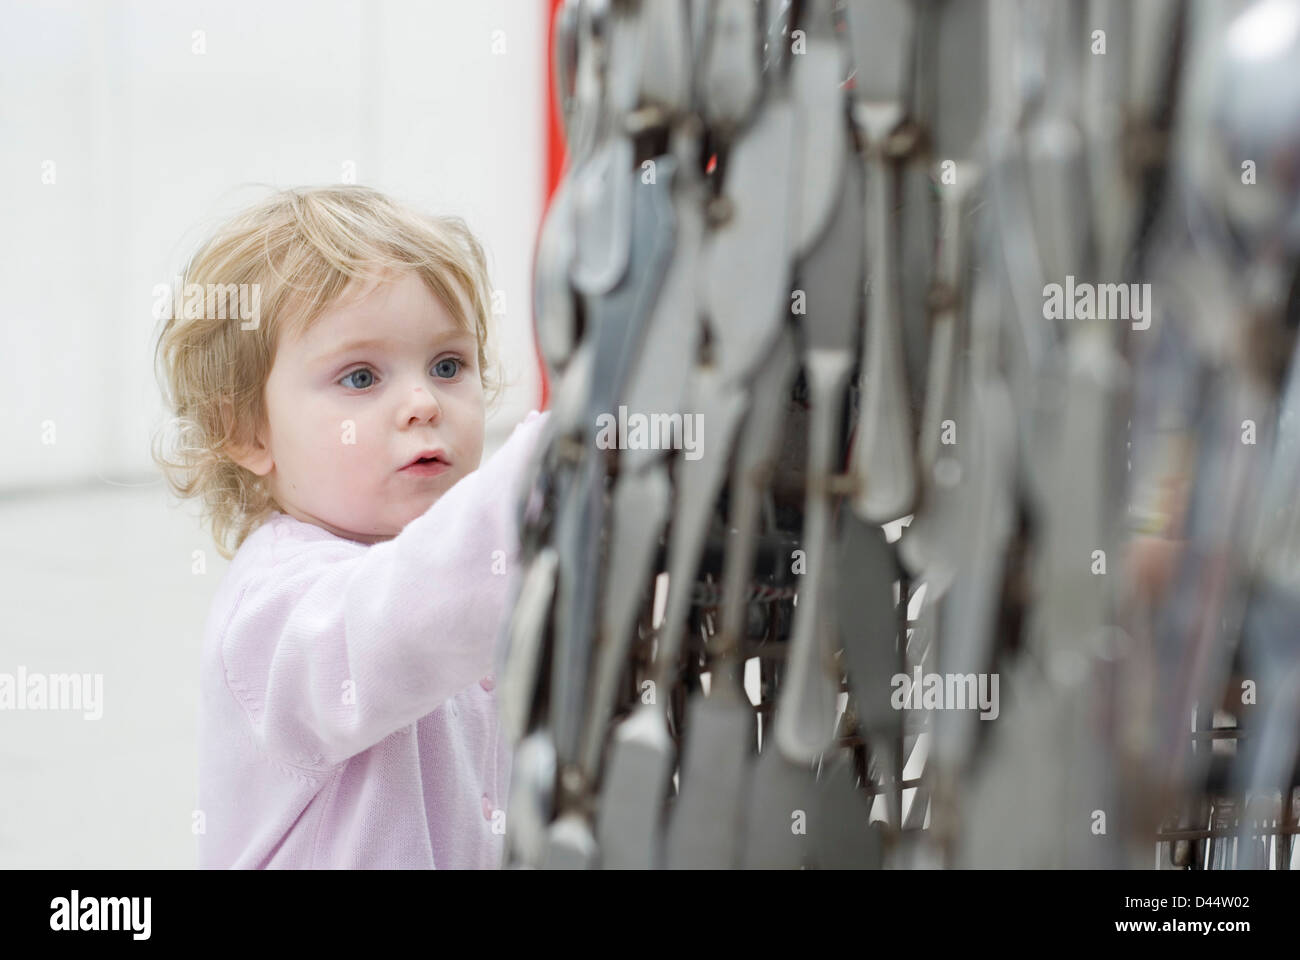 Little girl entranced by the cutlery statue, Millennium Galleries Museum, Sheffield, UK - Stock Image